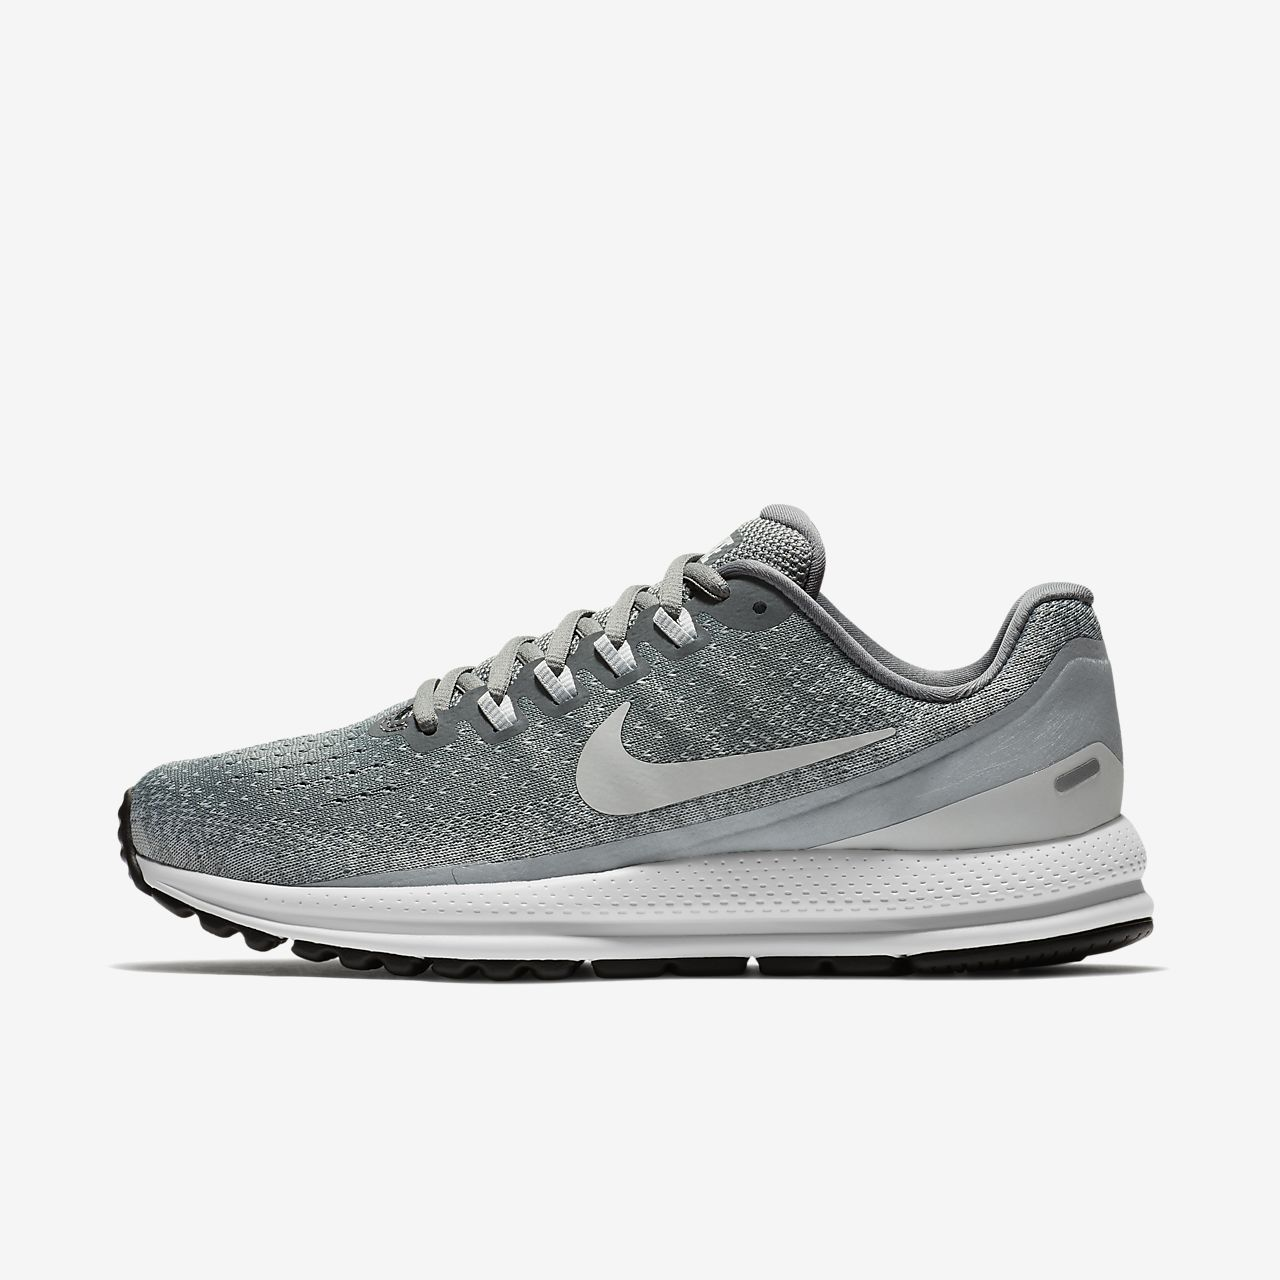 Nike Air Zoom Vomero 13 Women s Running Shoe. Nike.com 785b54c77f4c